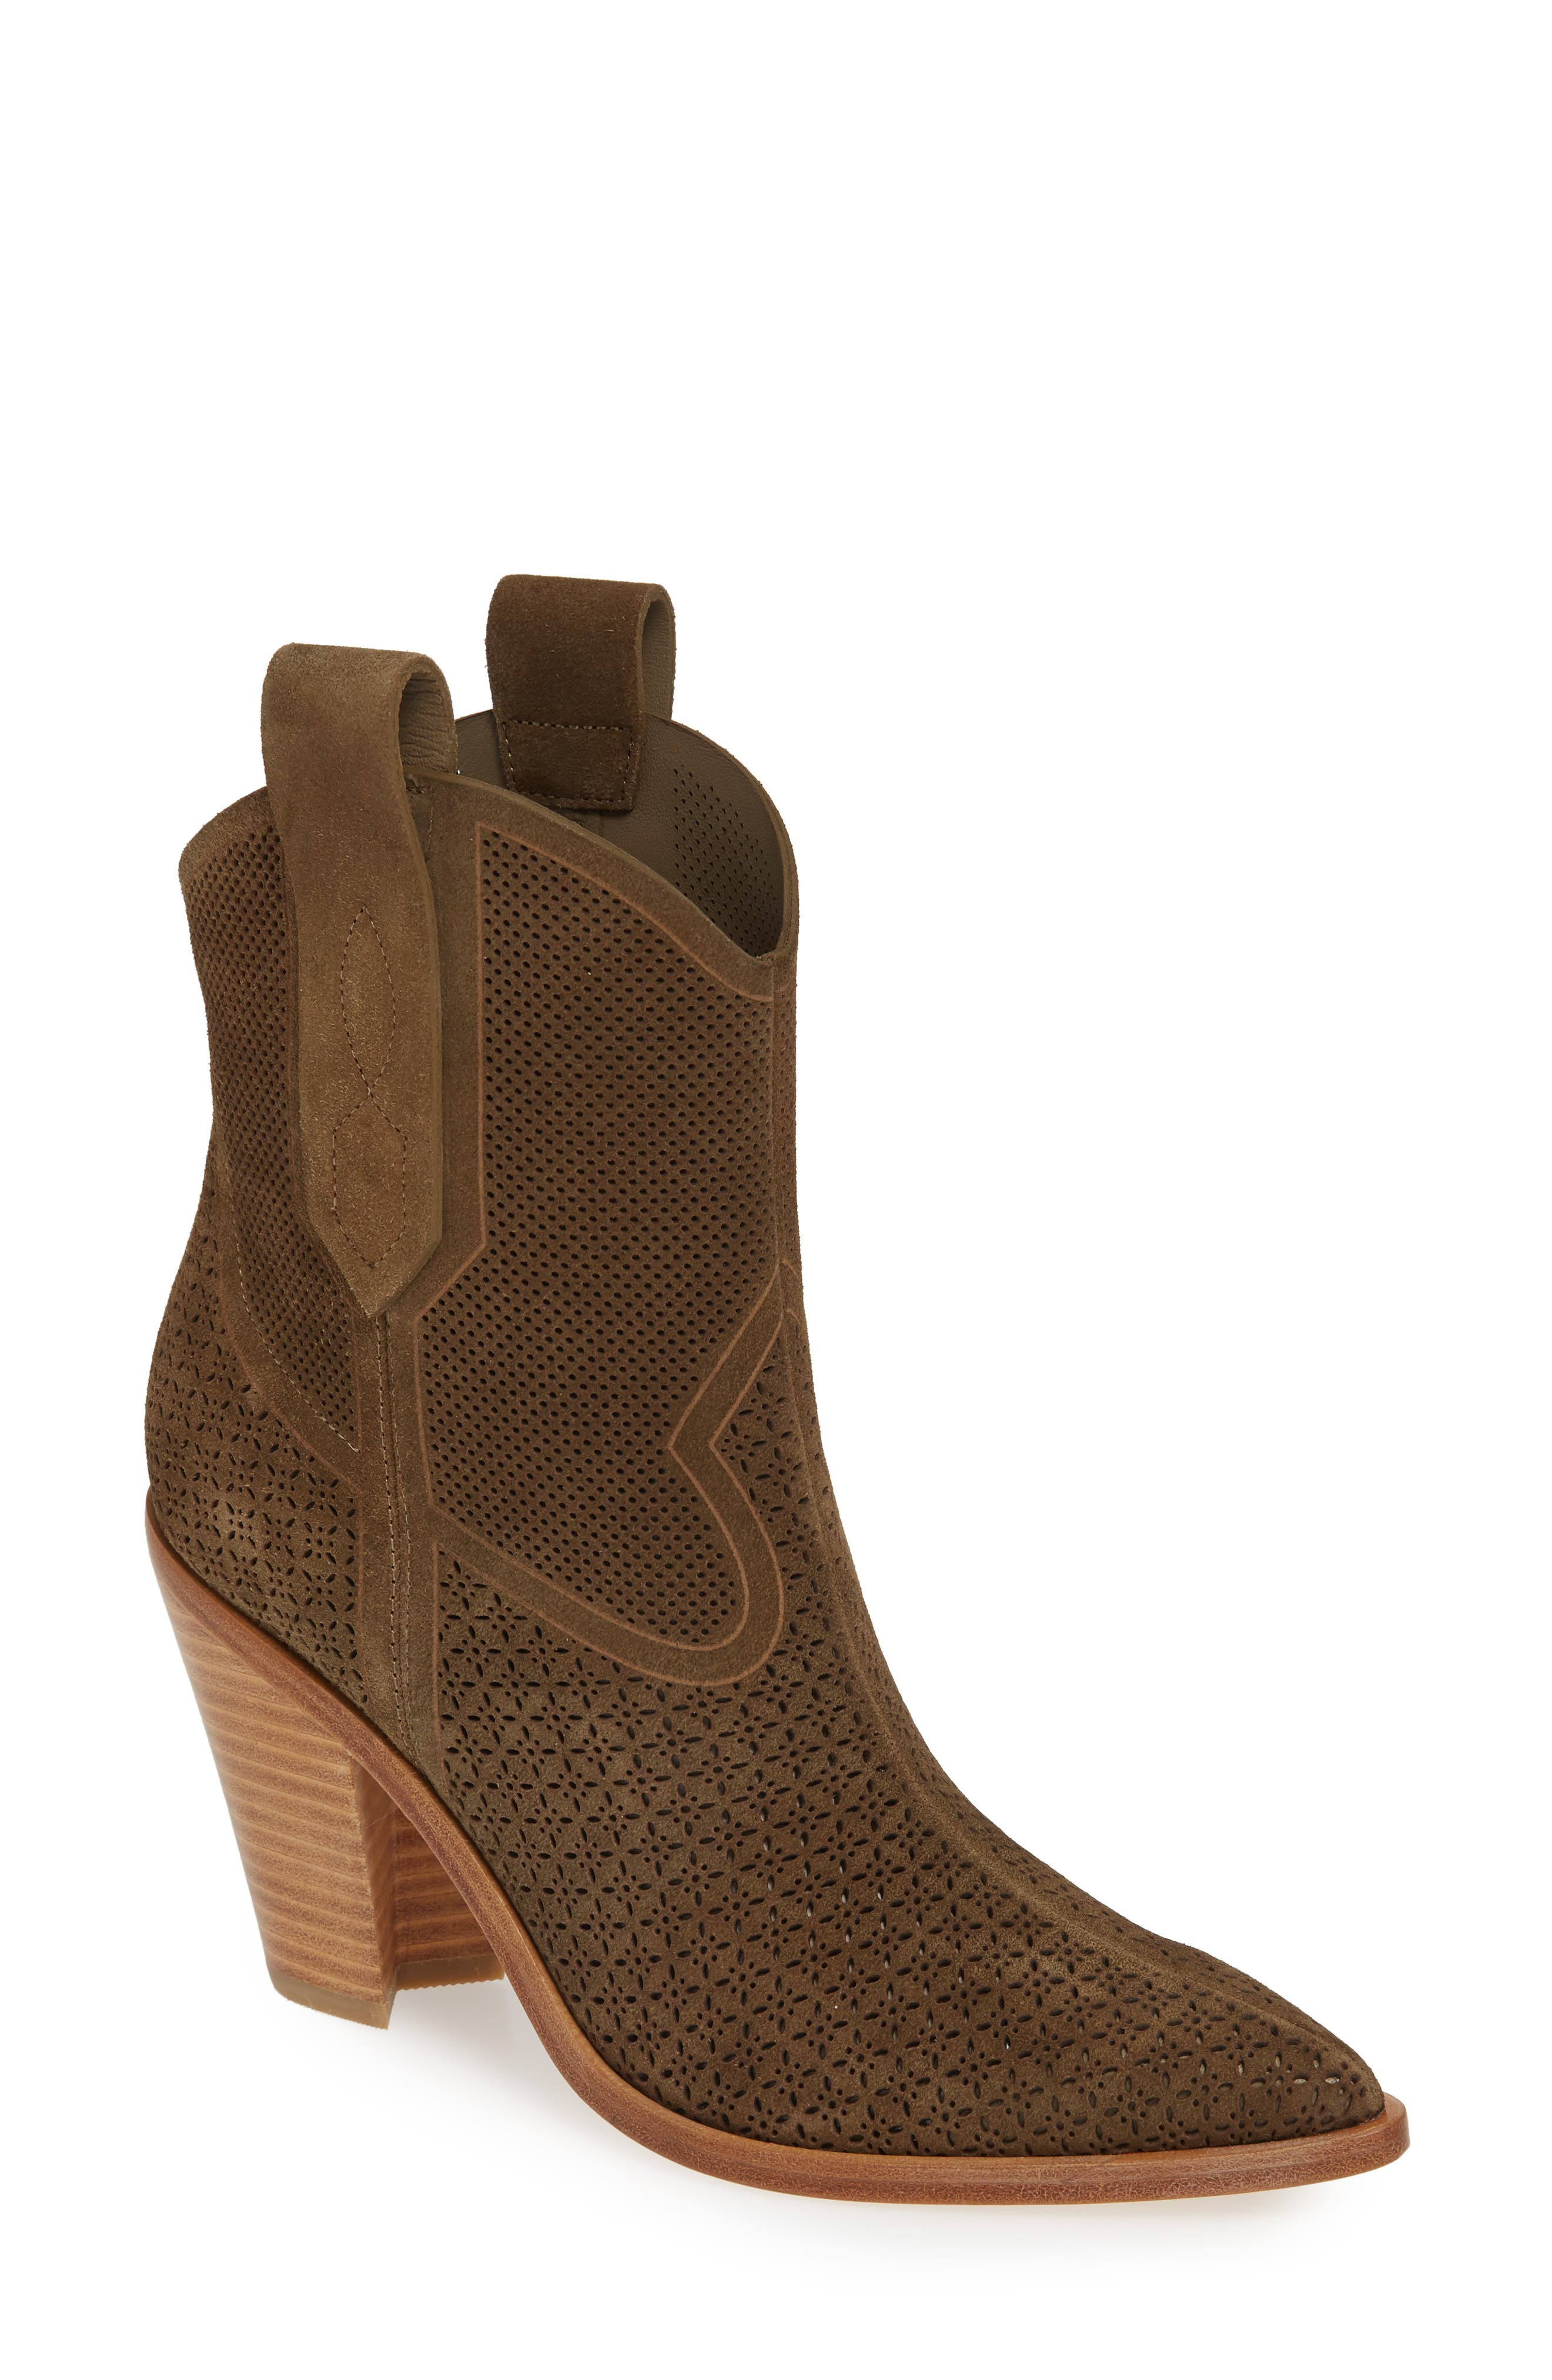 Sigerson Morrison Western Boot, Green